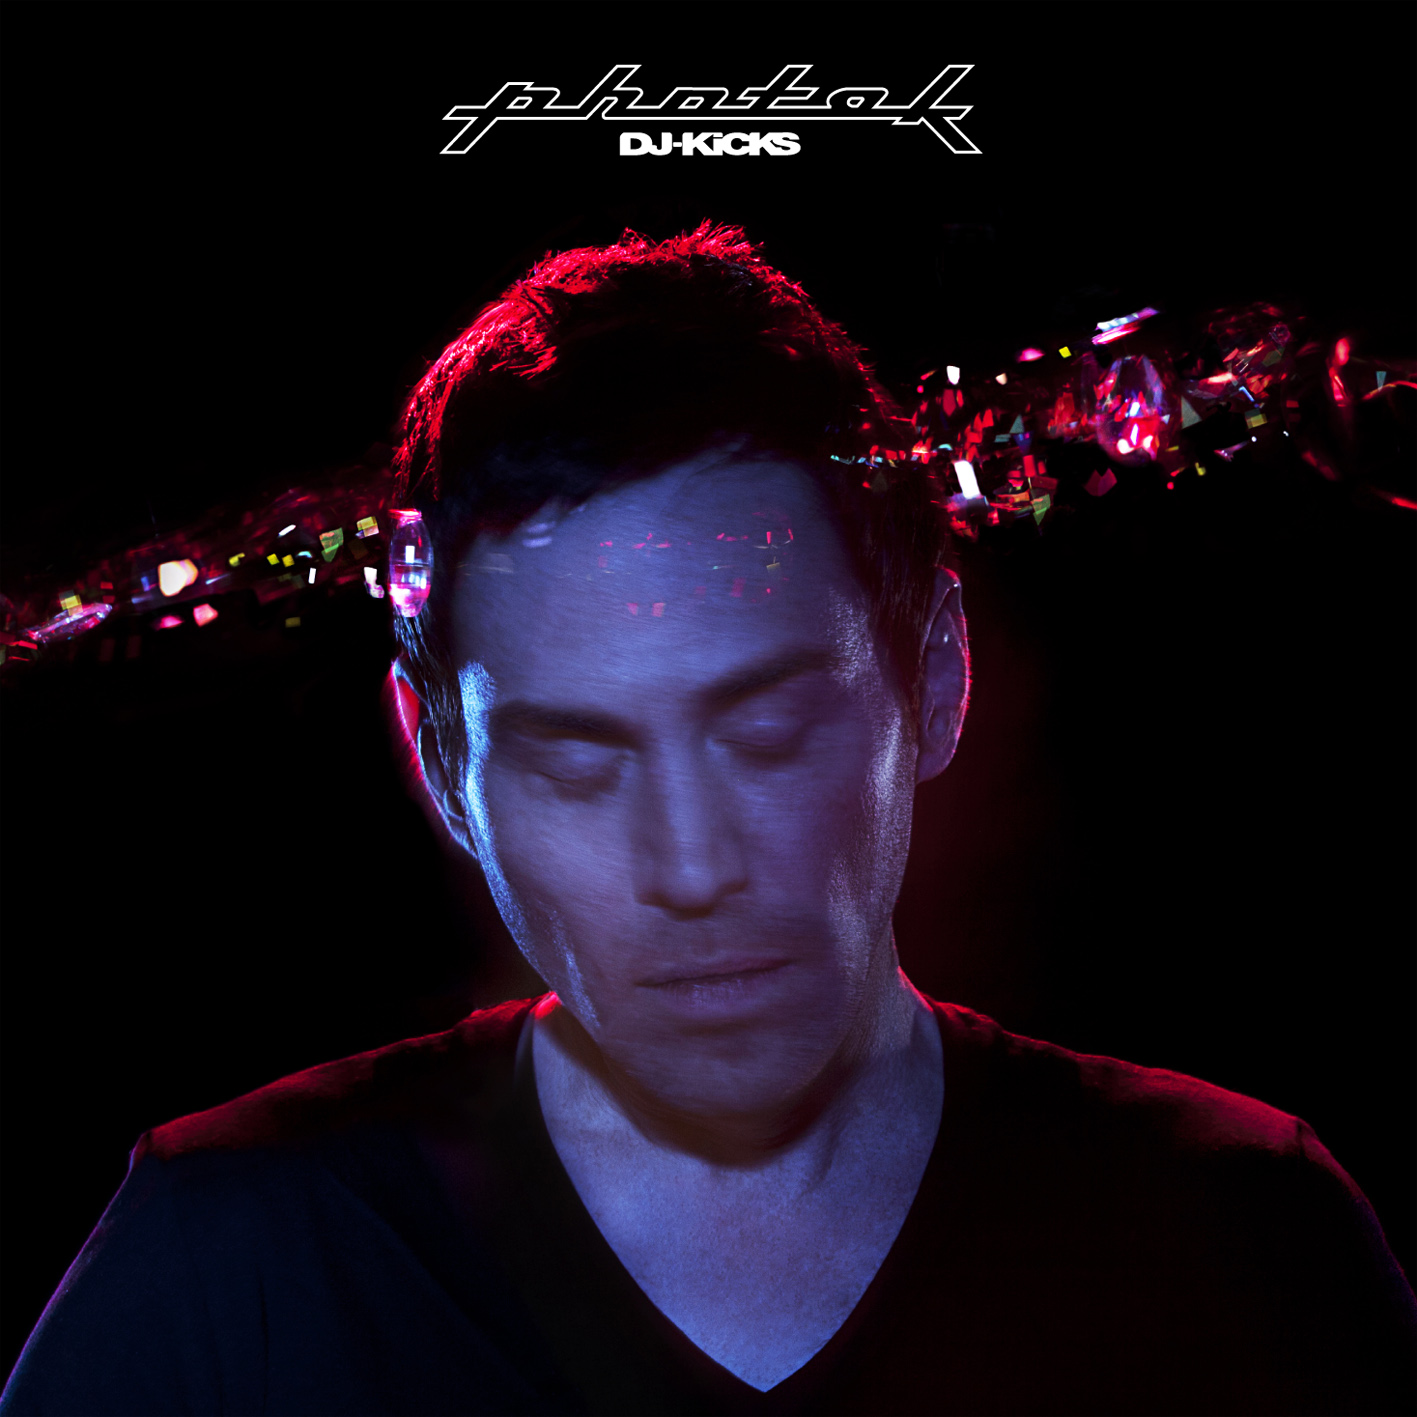 Photek – DJ-Kicks (!K7 Records)